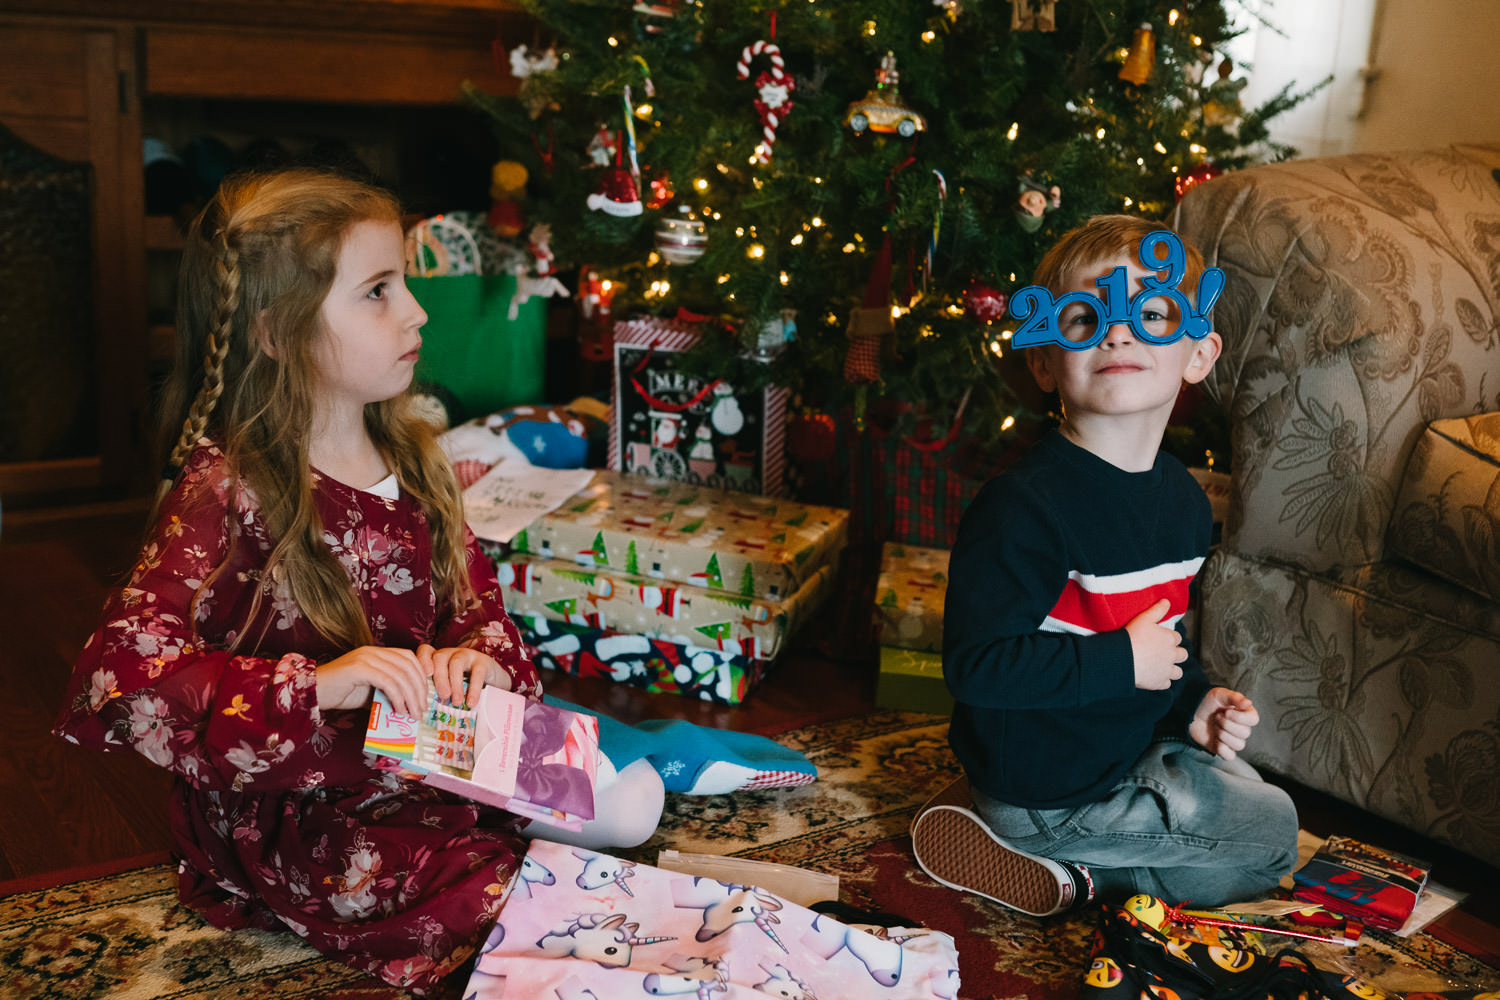 Children open gifts on Christmas eve.